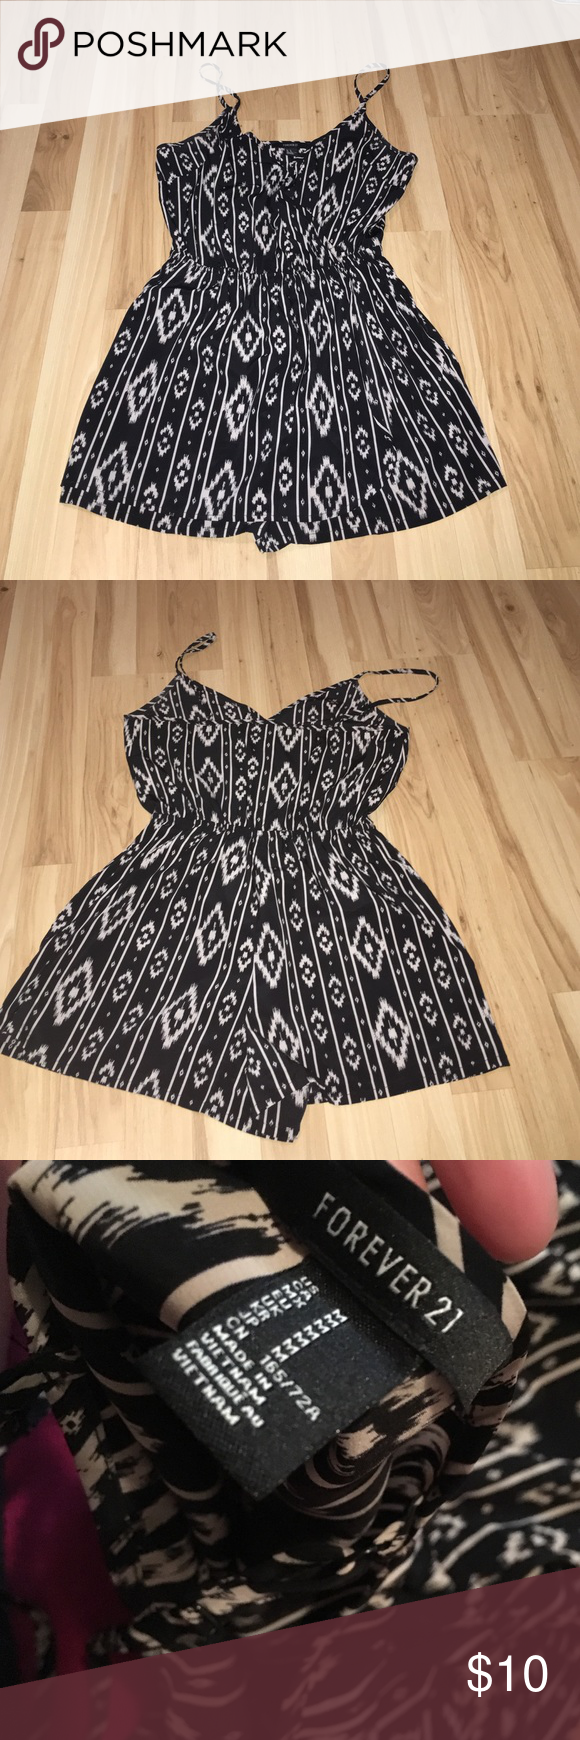 Cute Skirt Front Romper from Forever 21 Super cute and comfy romper from forever 21! The front has an extra layer that makes it look like a dress, but it is a romper! Size medium Forever 21 Dresses